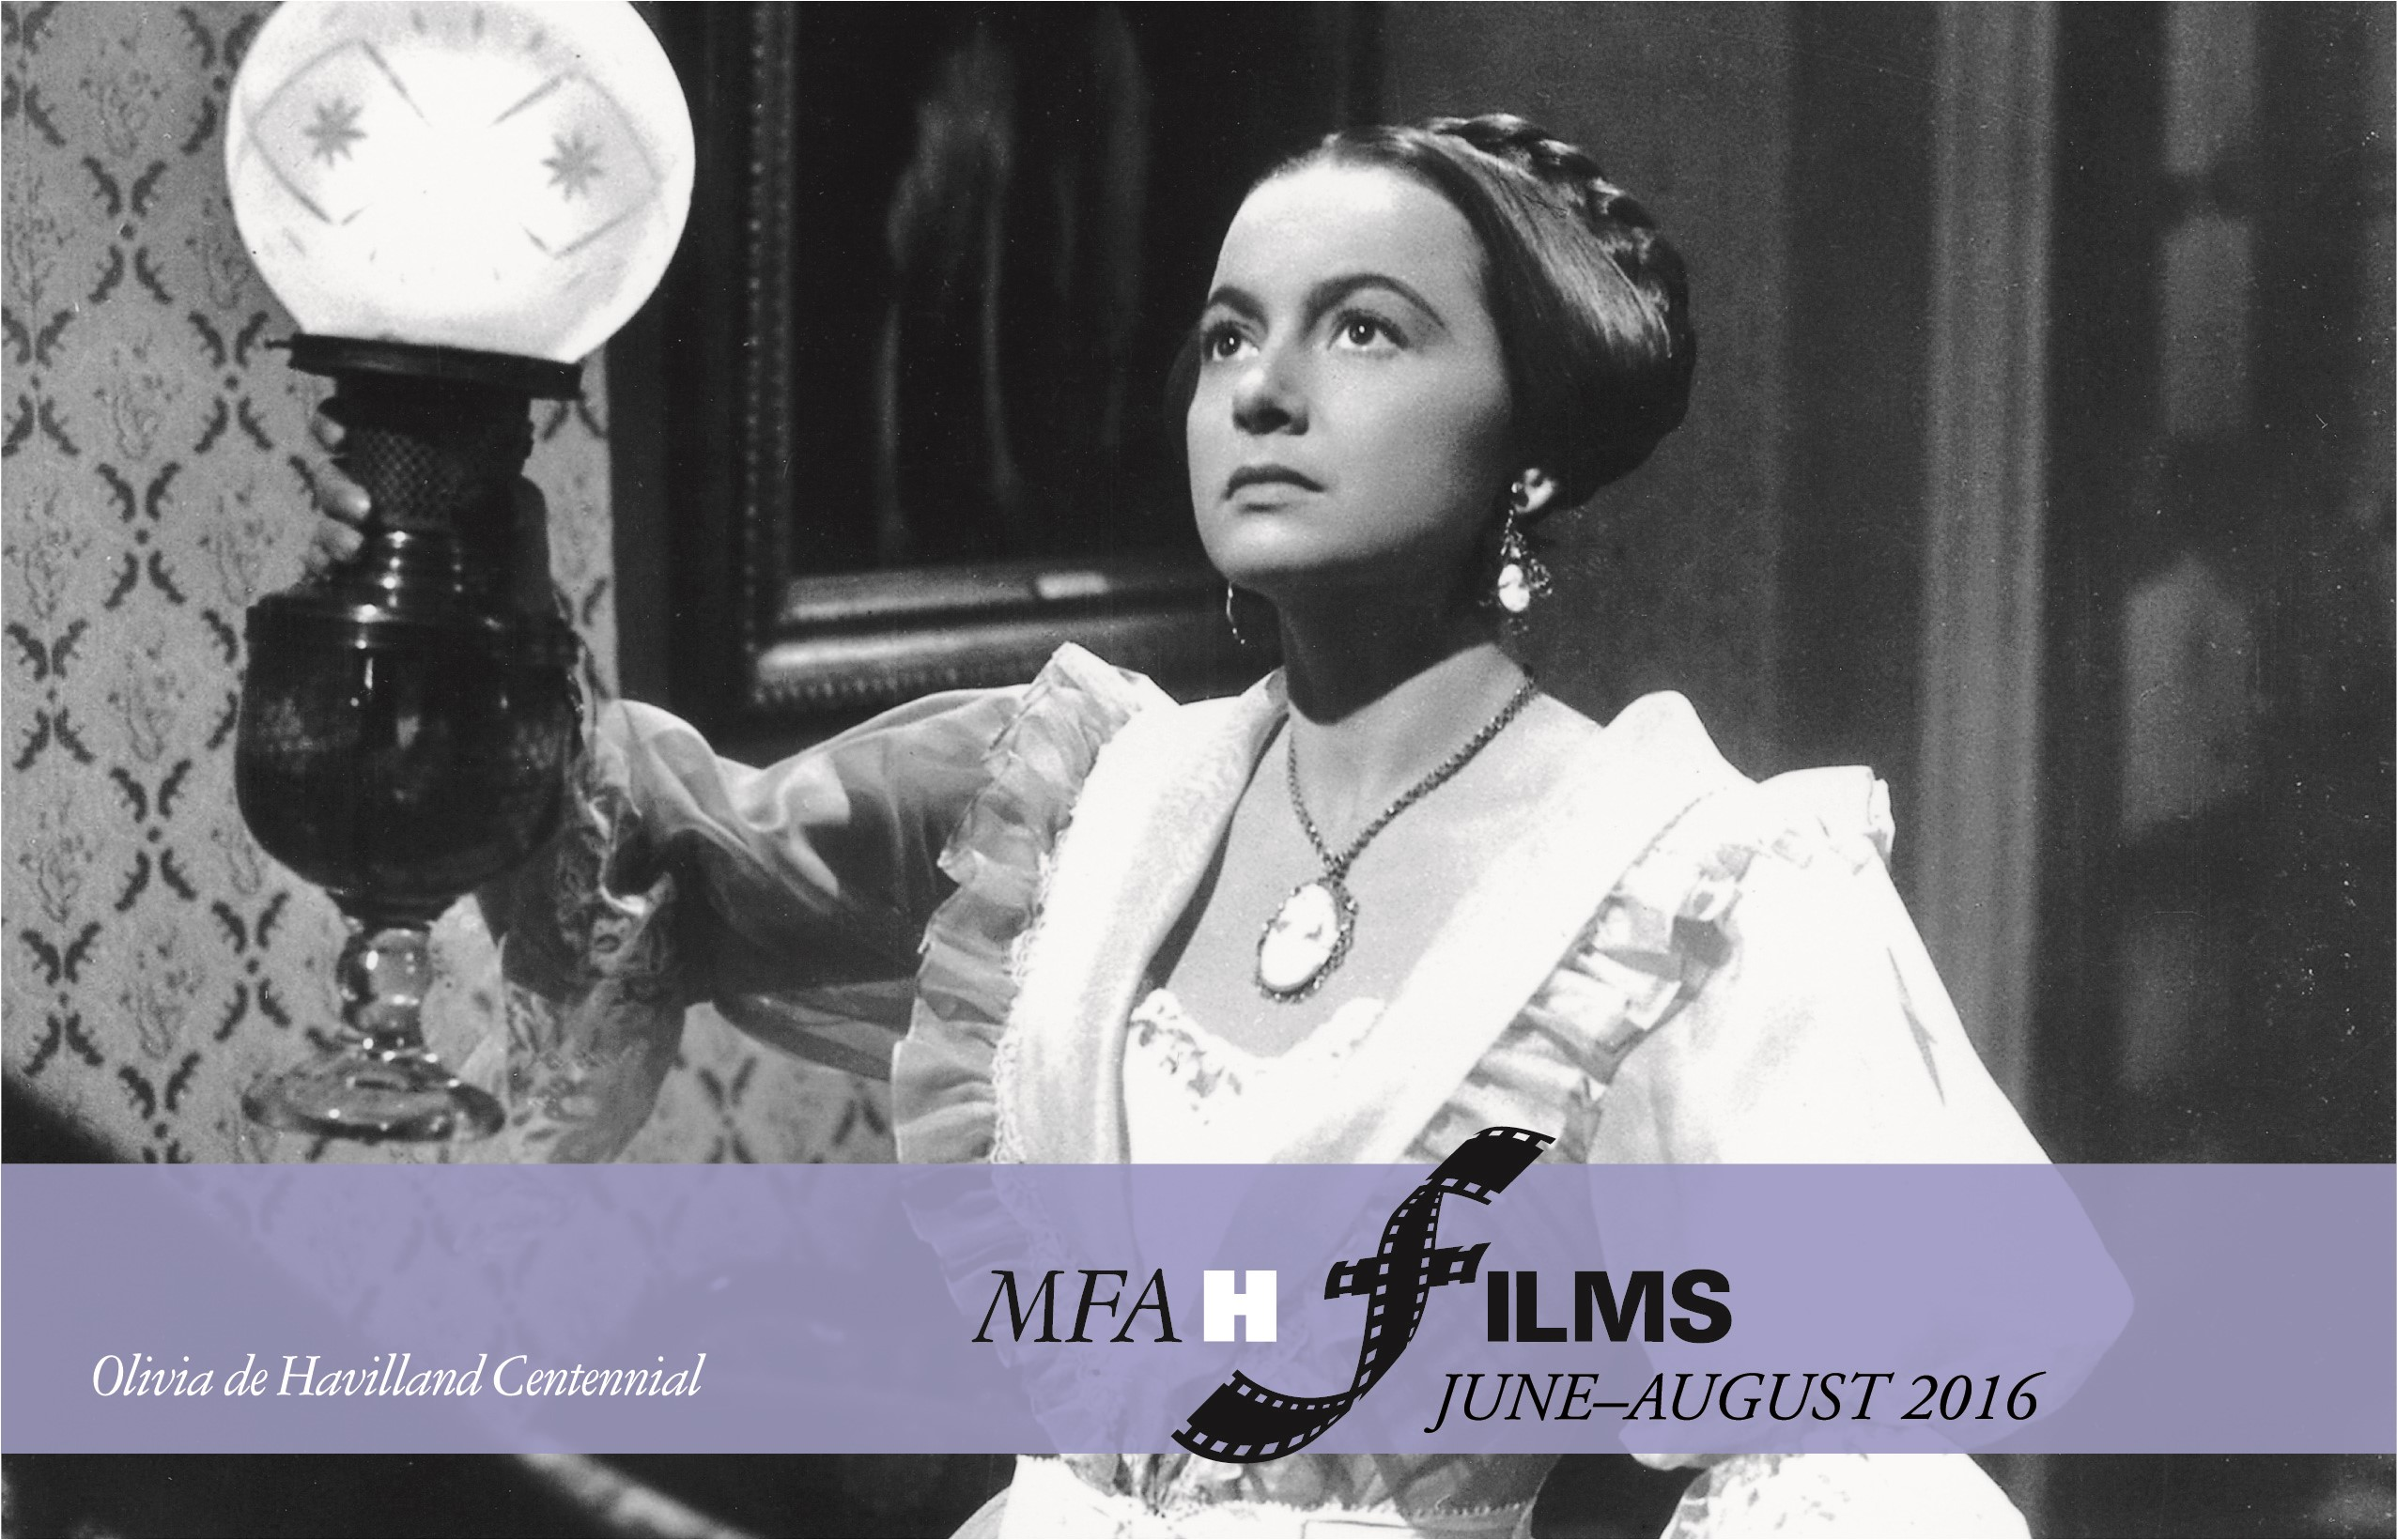 Film Calendar June-August 2016 cover